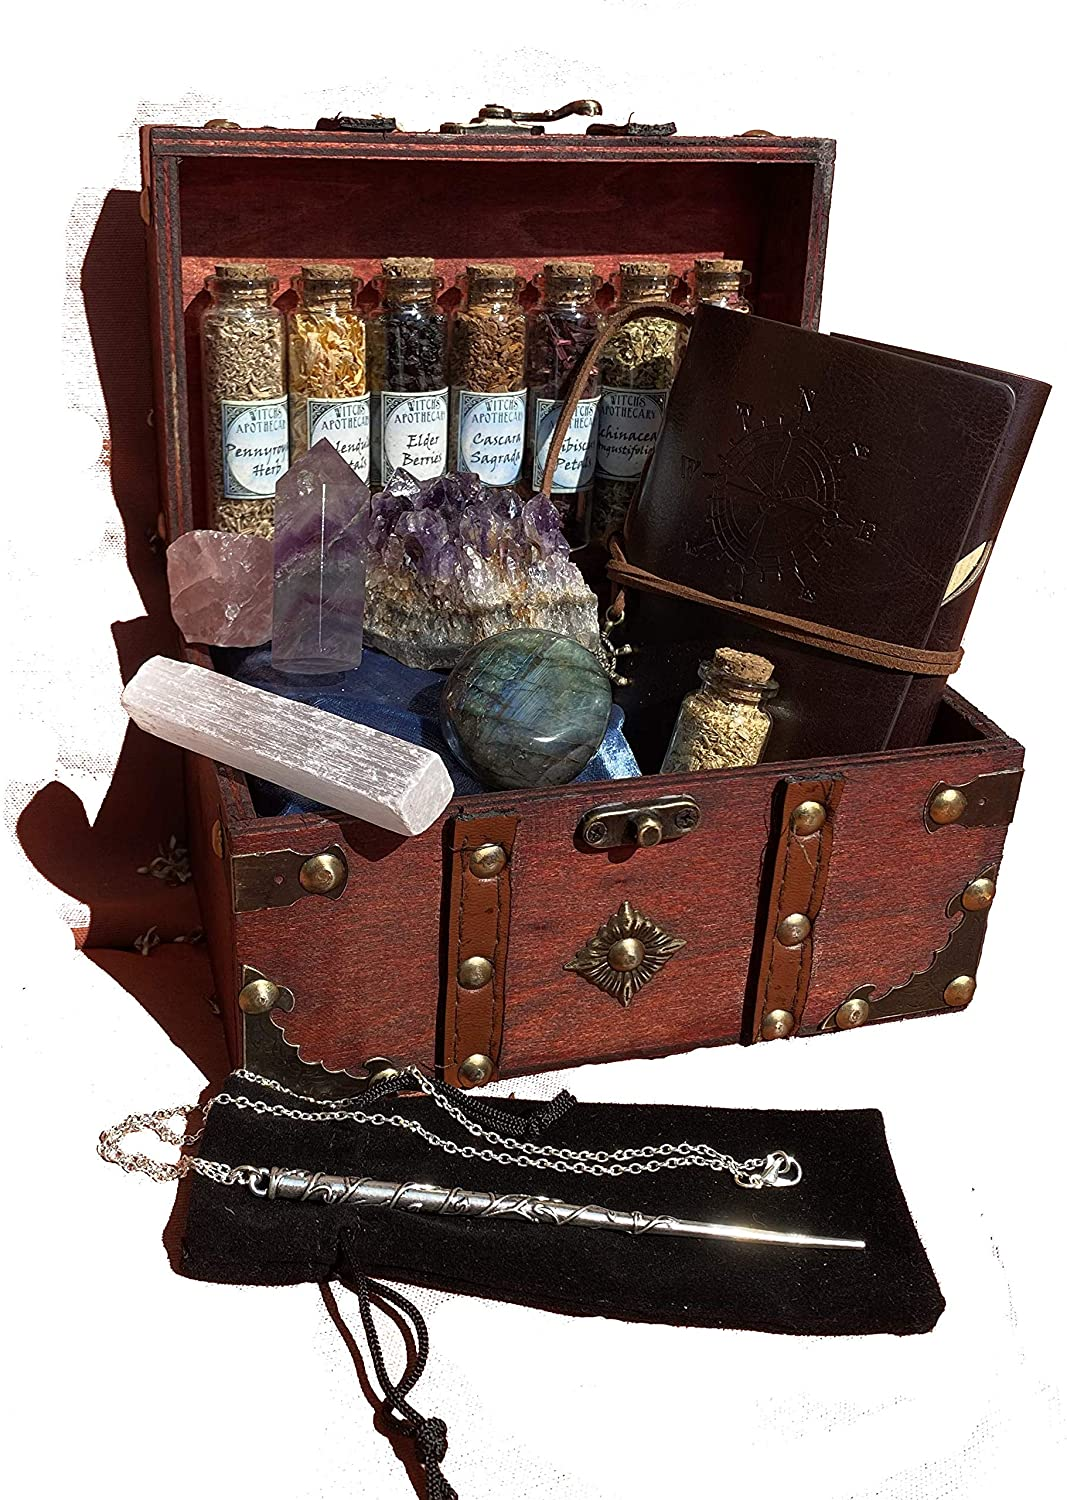 Witch kit Wiccan Altar Beginner for Baby Witchcraft Witc 人気の製品 公式ショップ